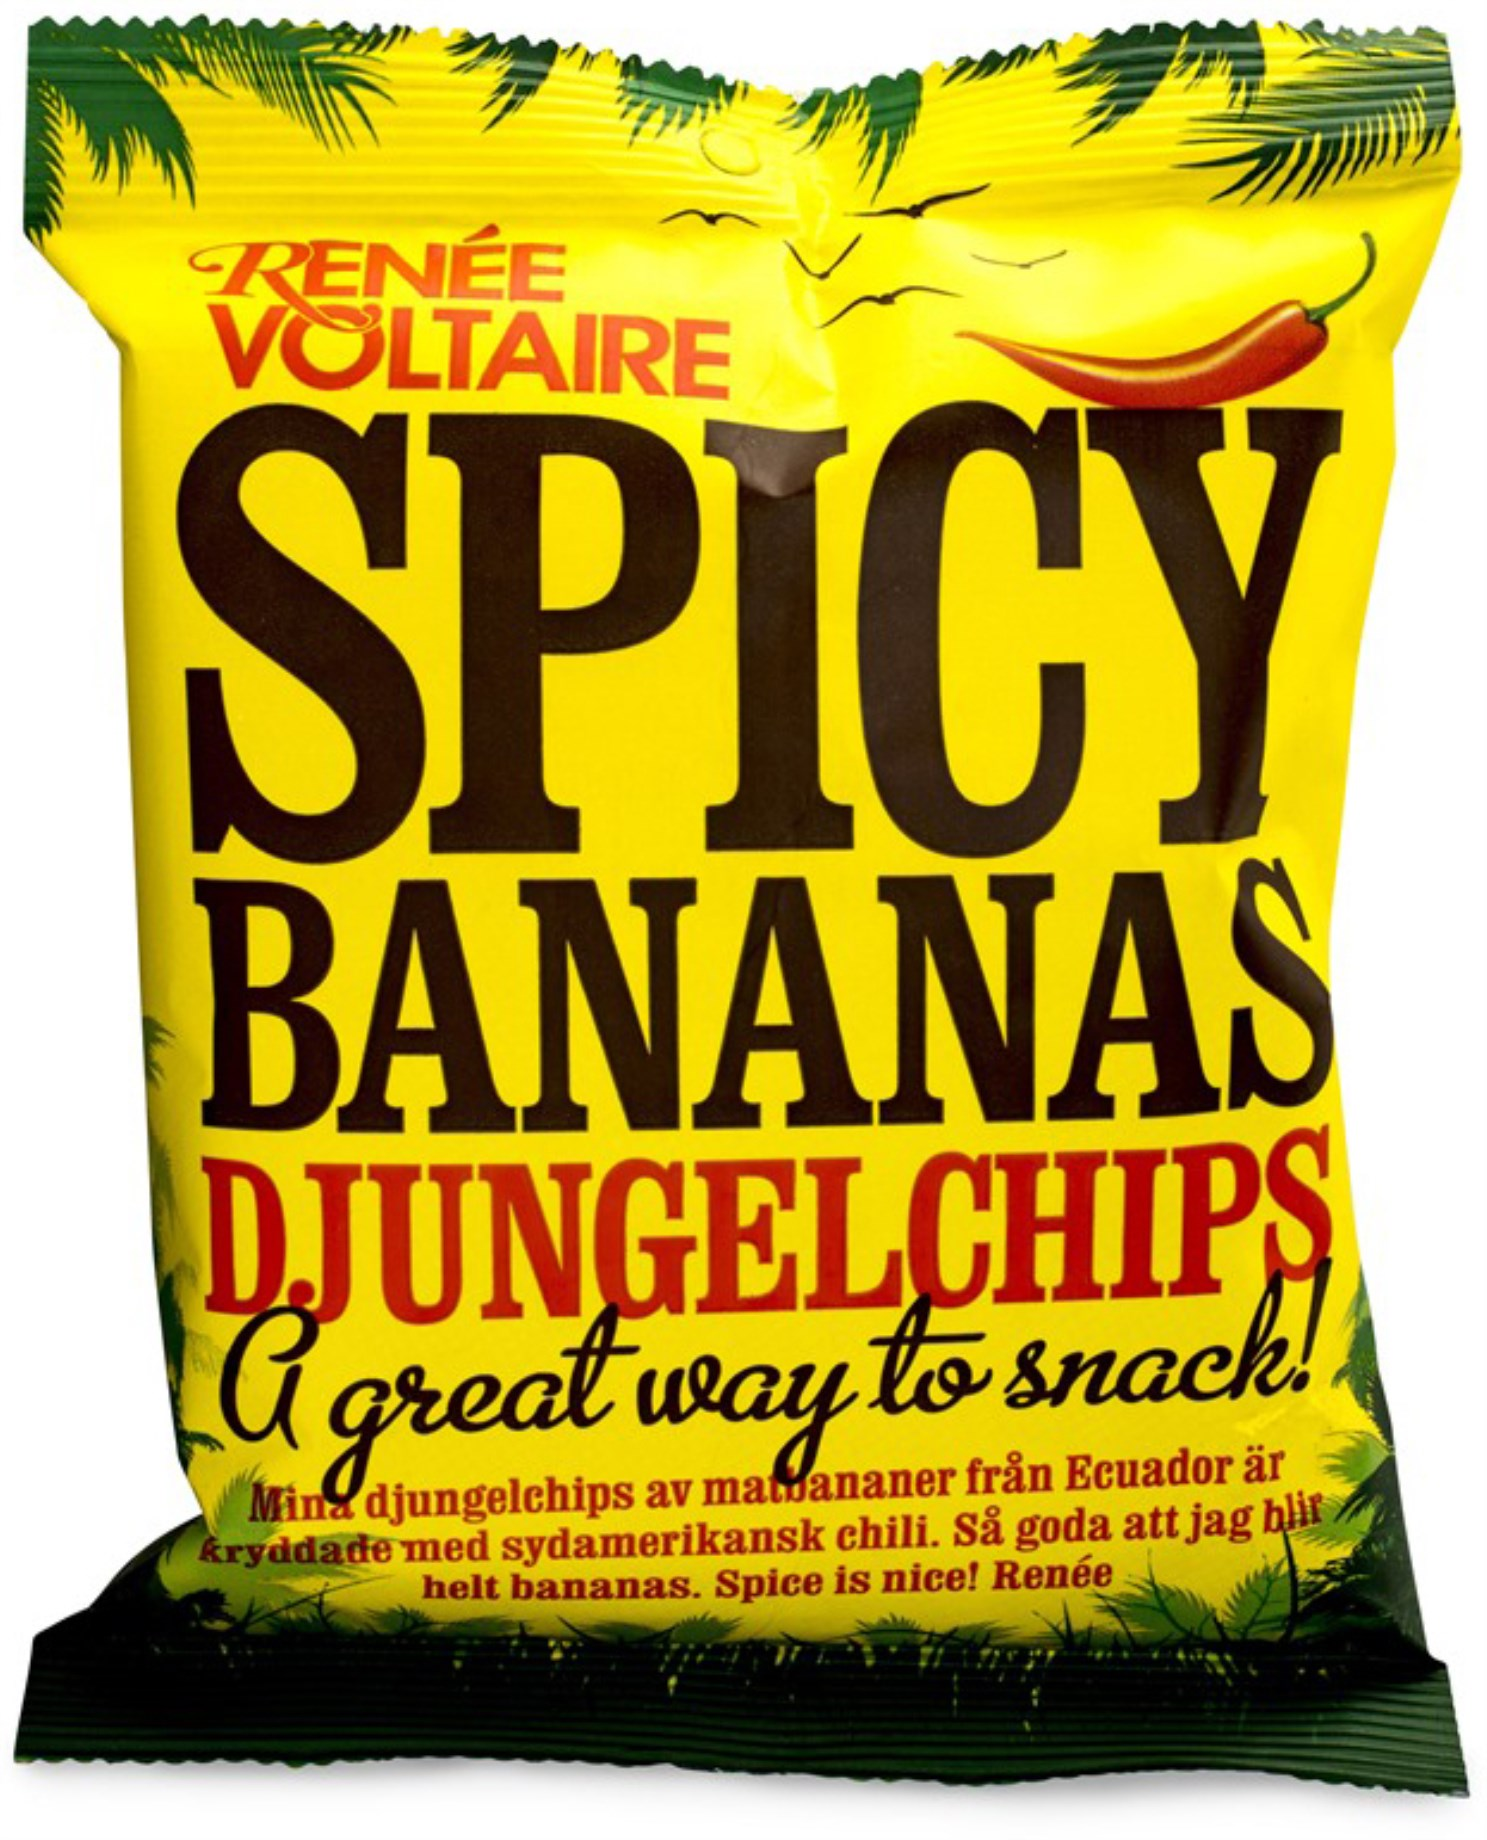 Renee Voltaire Spicy Bananas Djungelchips,  - Renee Voltaire